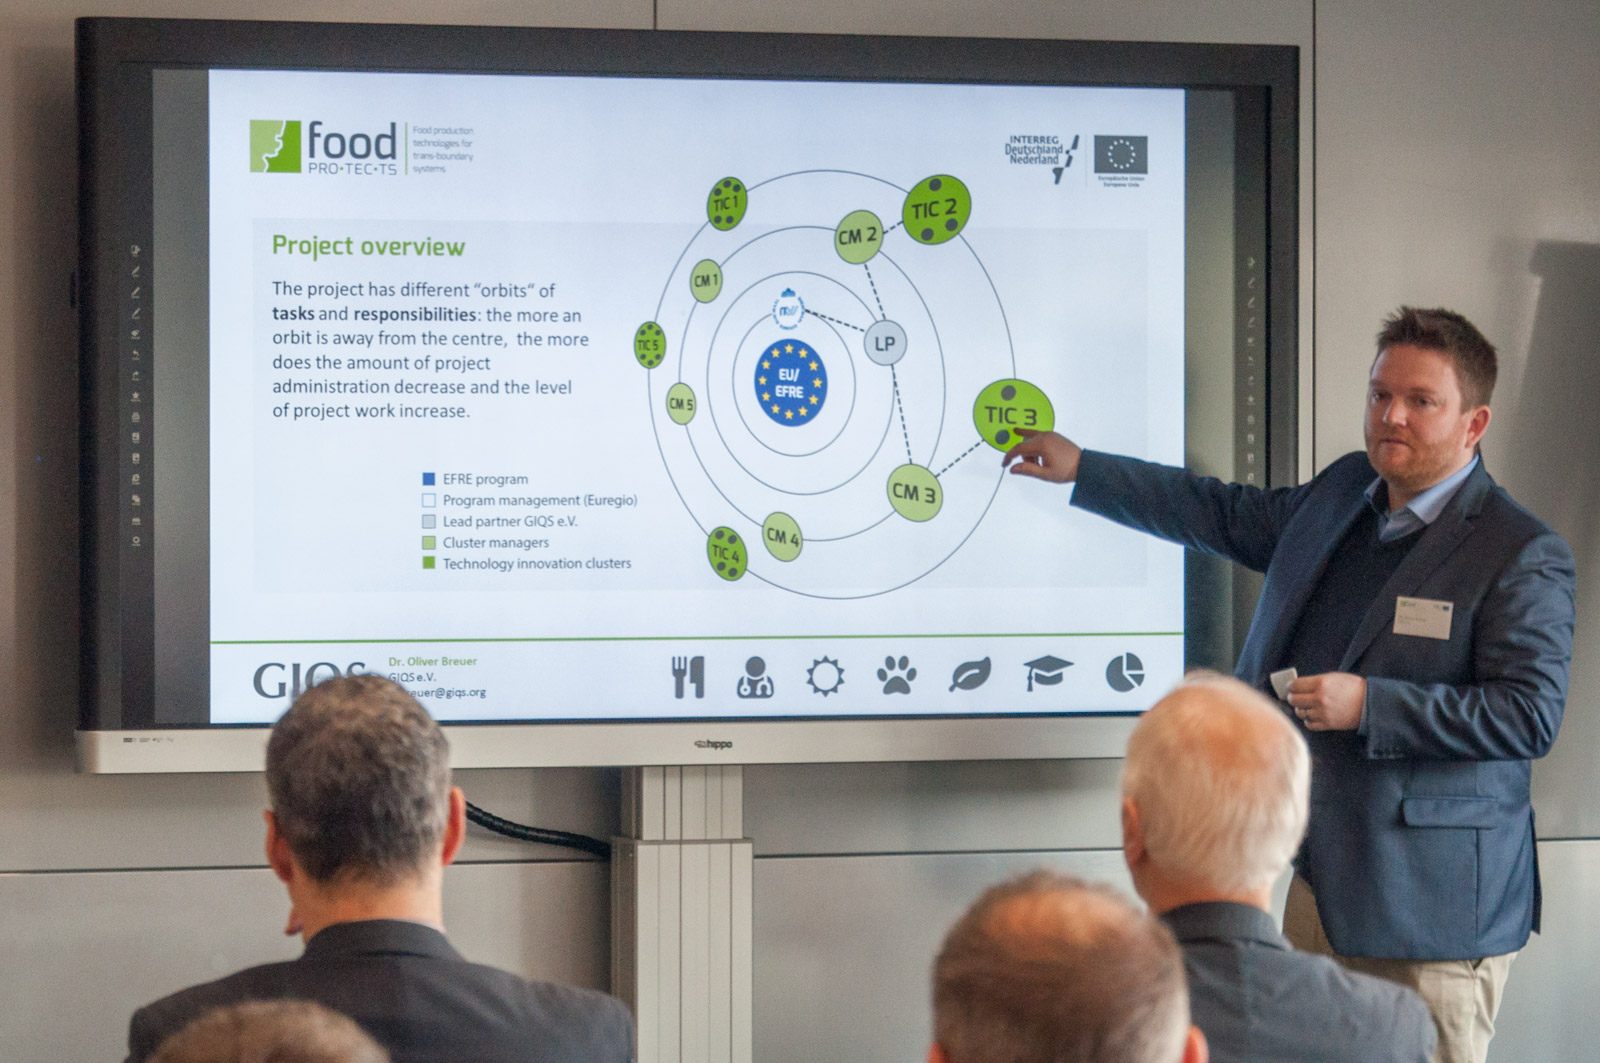 Food Pro·tec·ts: Kick-off of the new INTERREG project